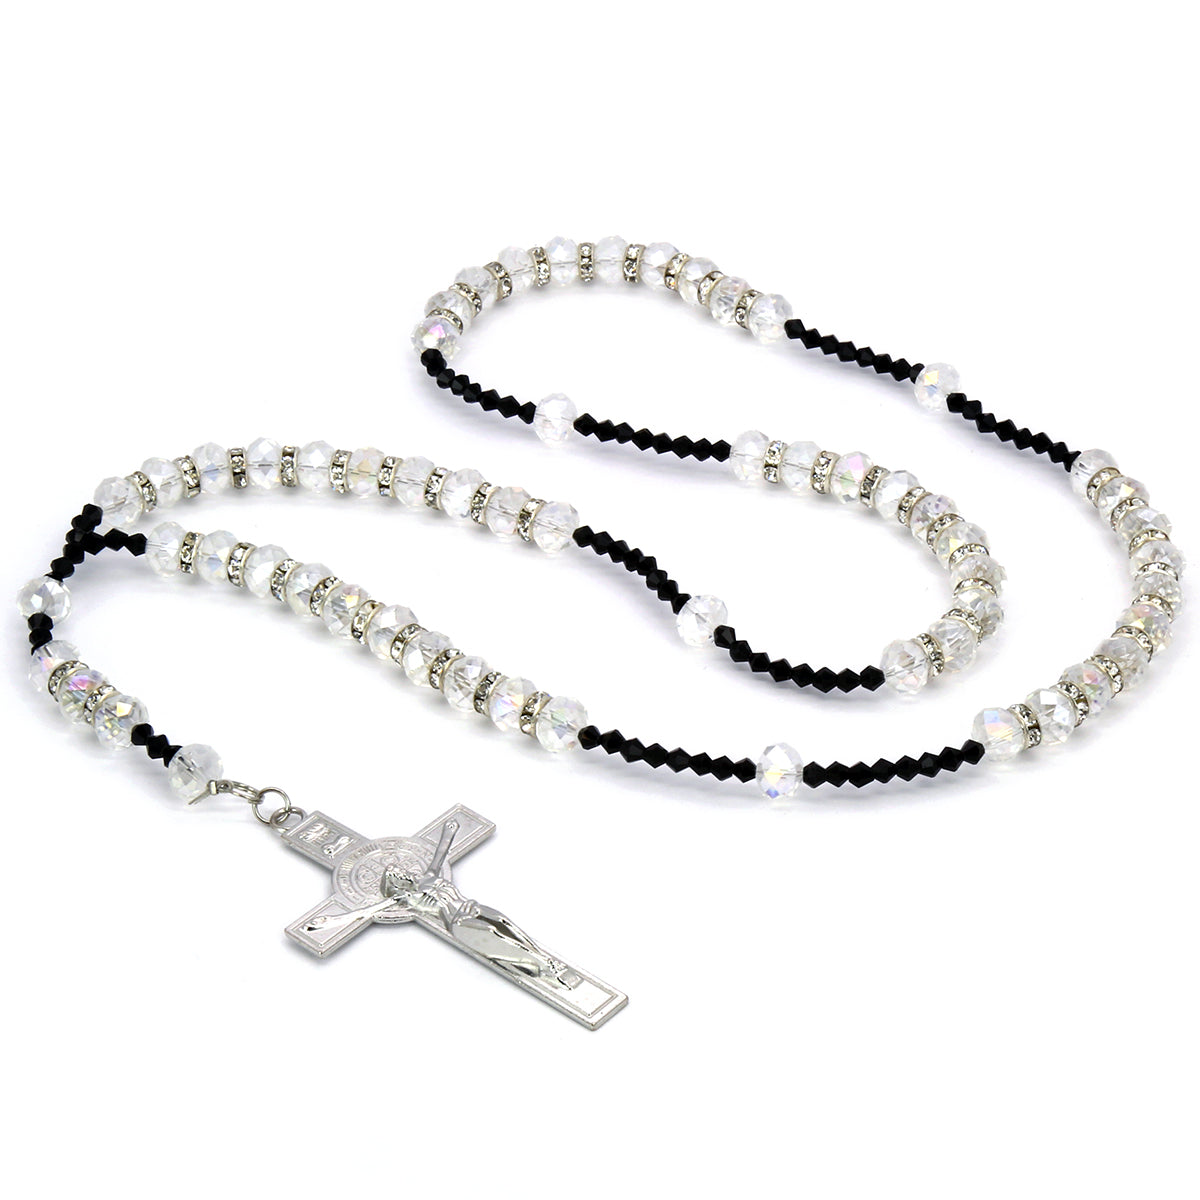 "8MM CLEAR Crystal Rosary 32"" & Jesus Cross Pendant"